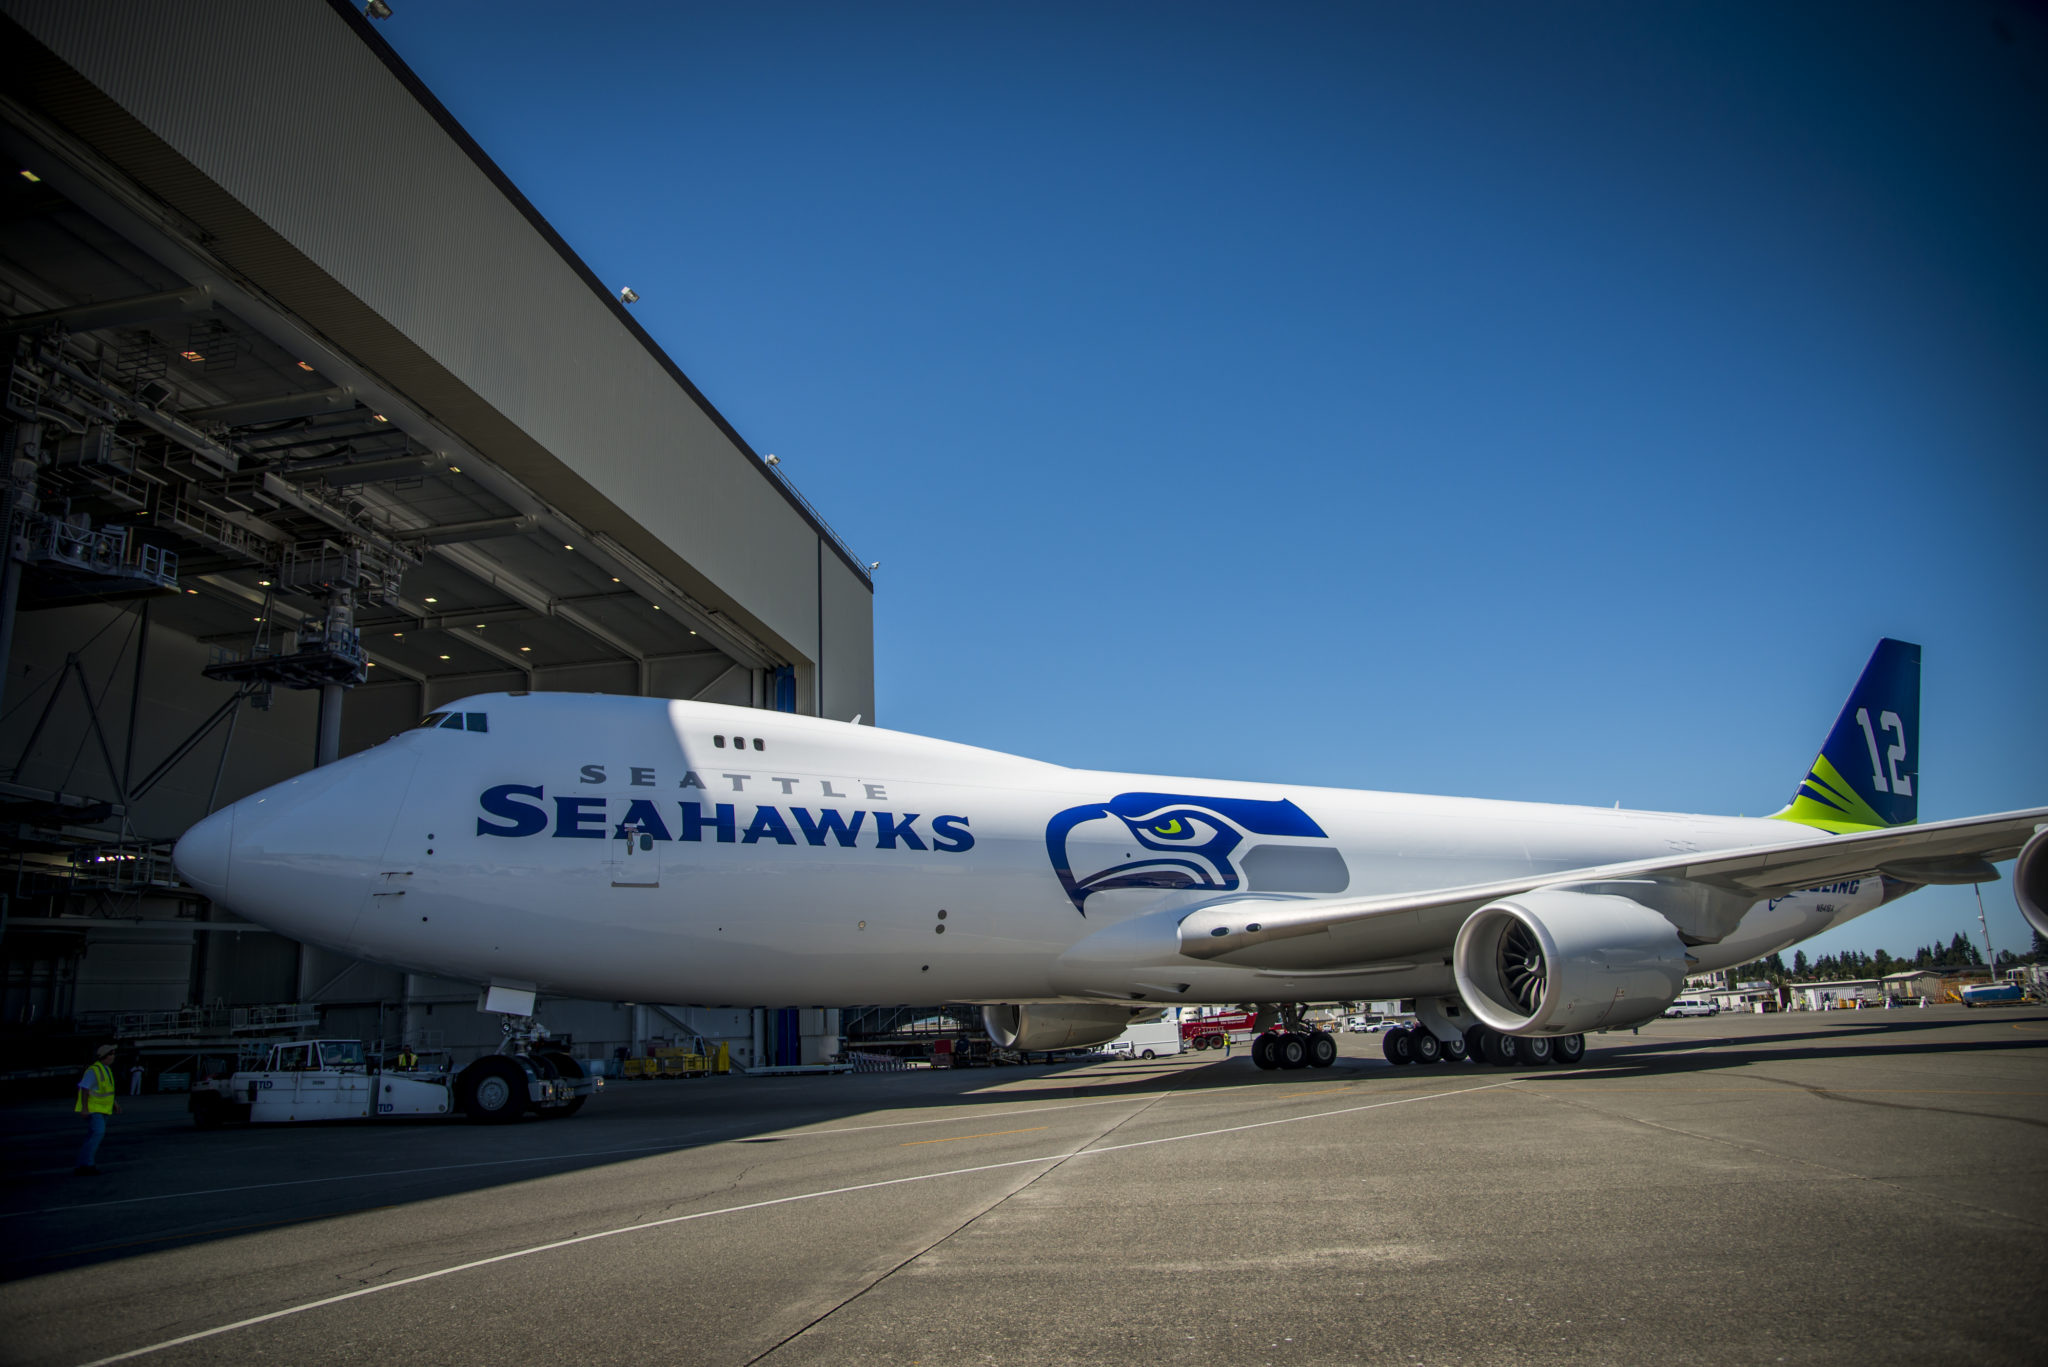 Minuscule demand for Boeing 747-8F - Leeham News and Analysis